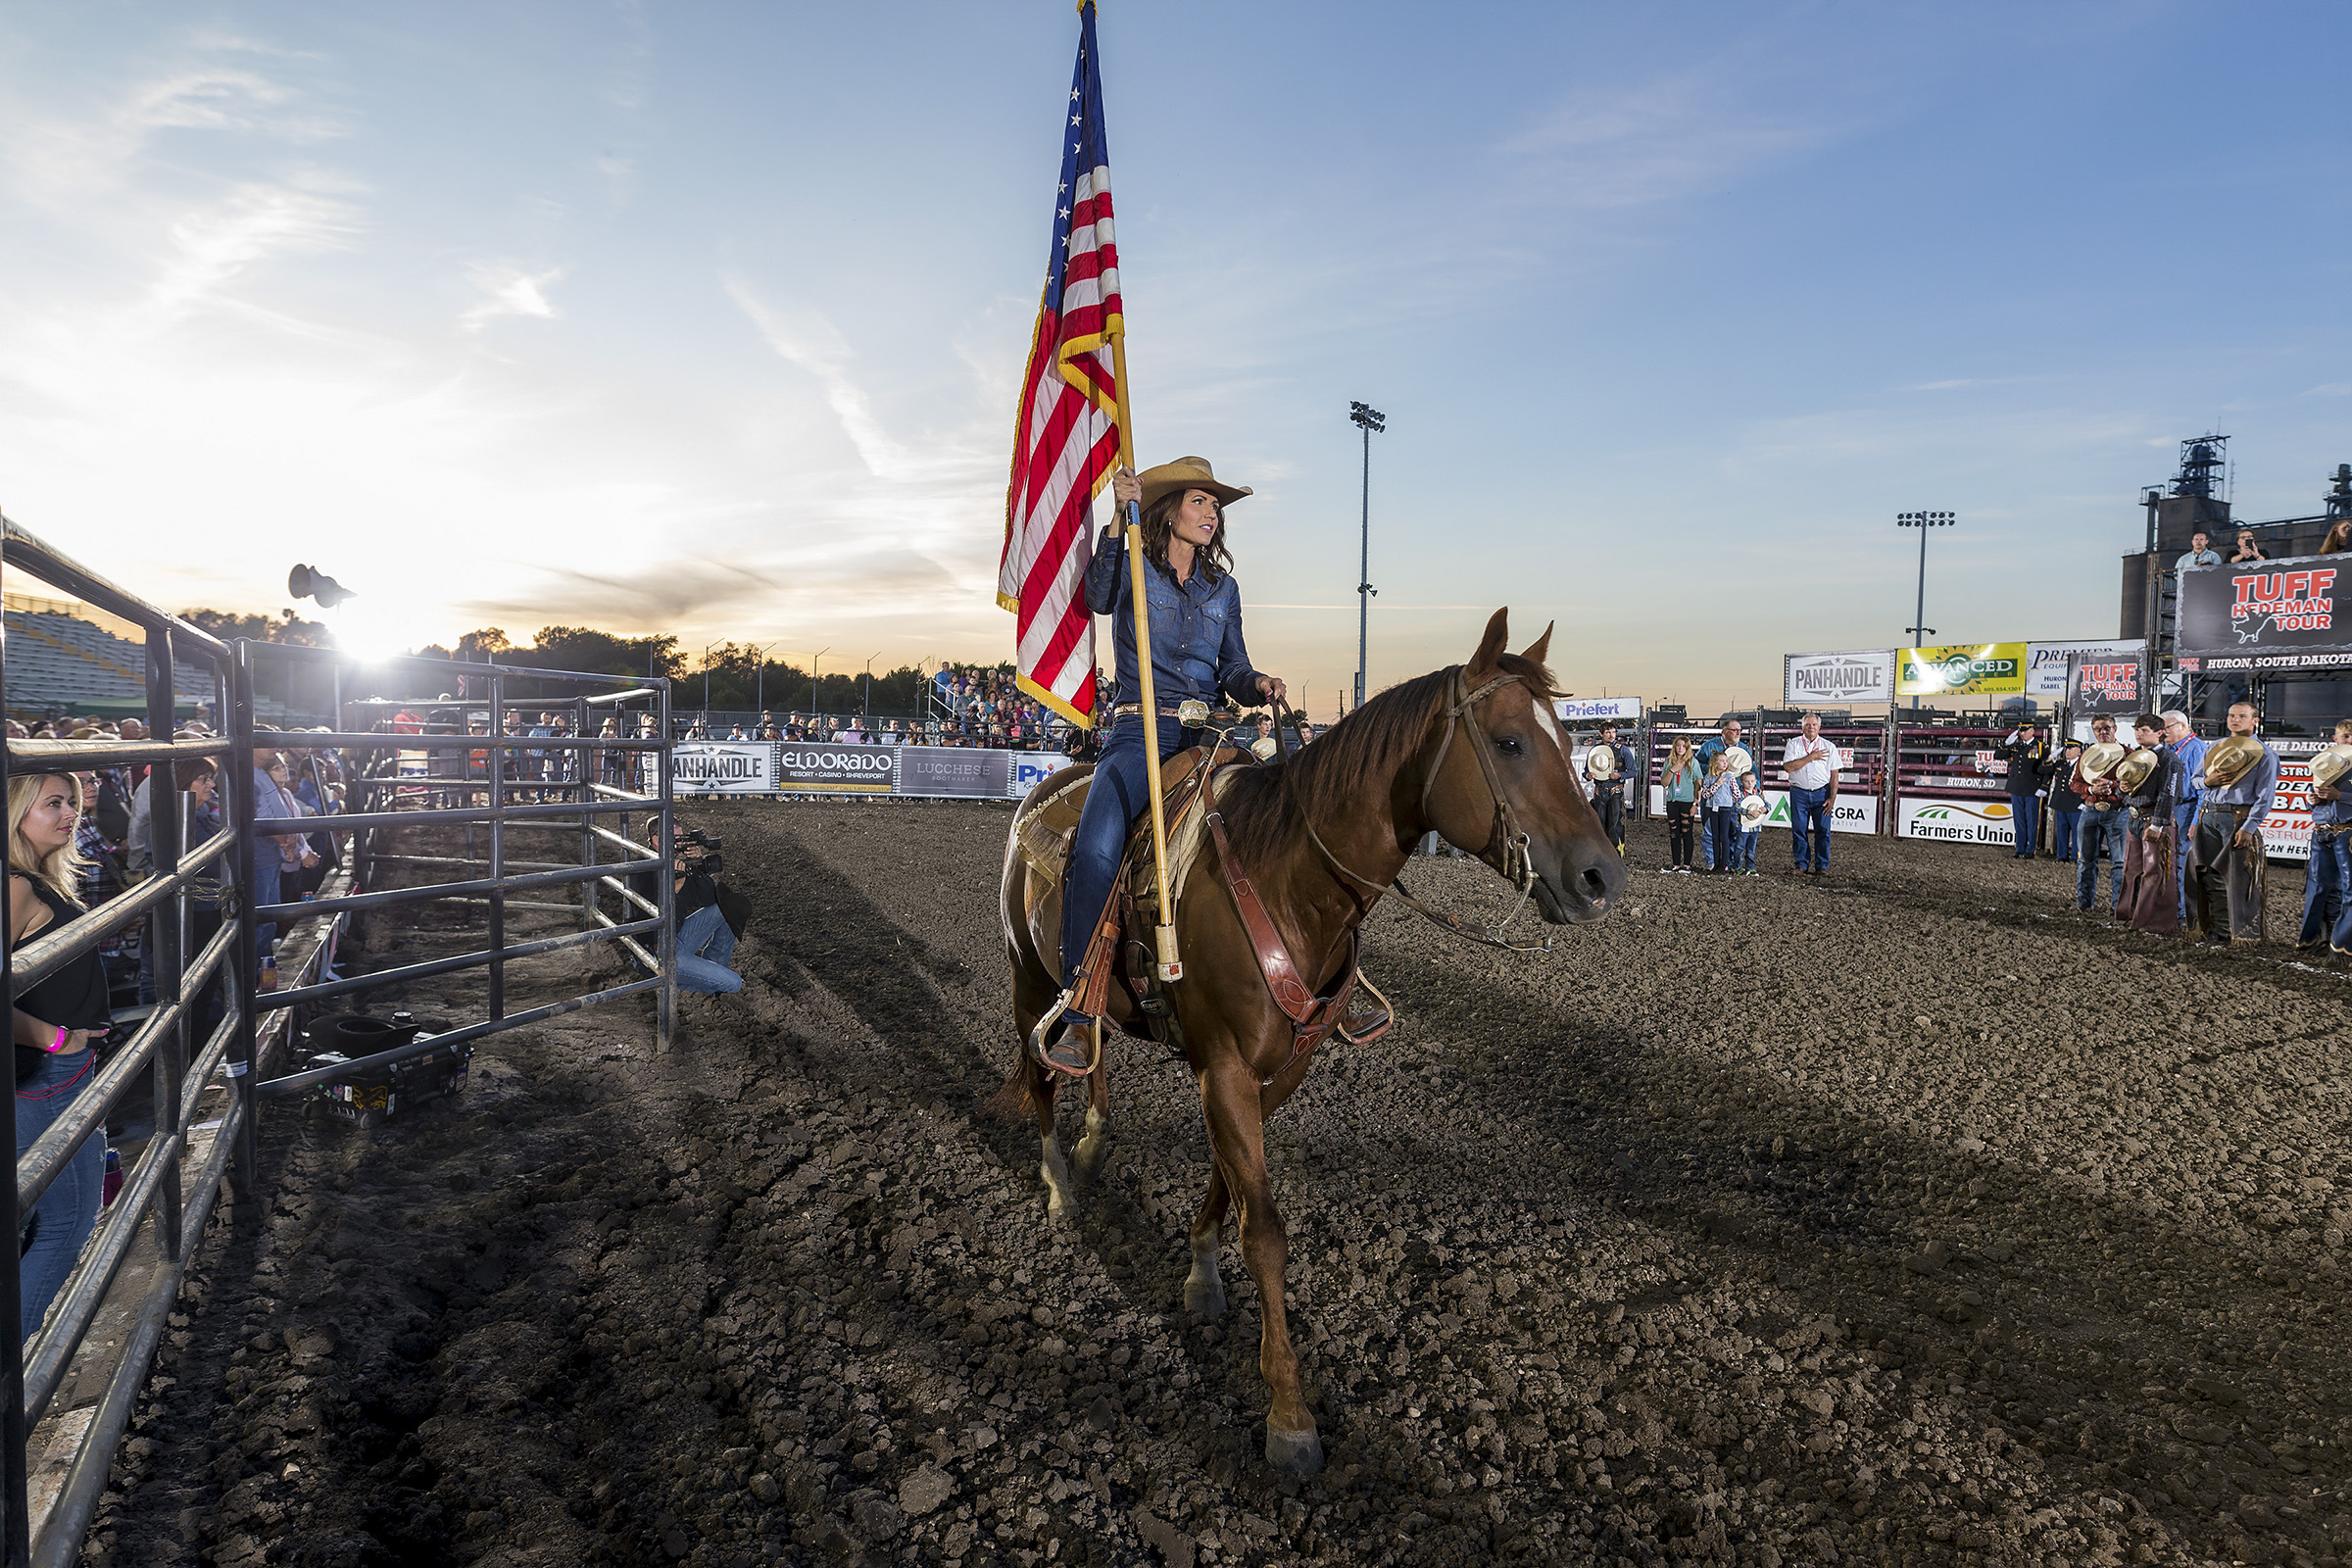 South Dakota Governor Kristi Noem carried the flag to open the 2019 Red Wilk Construction TH Bull Bash